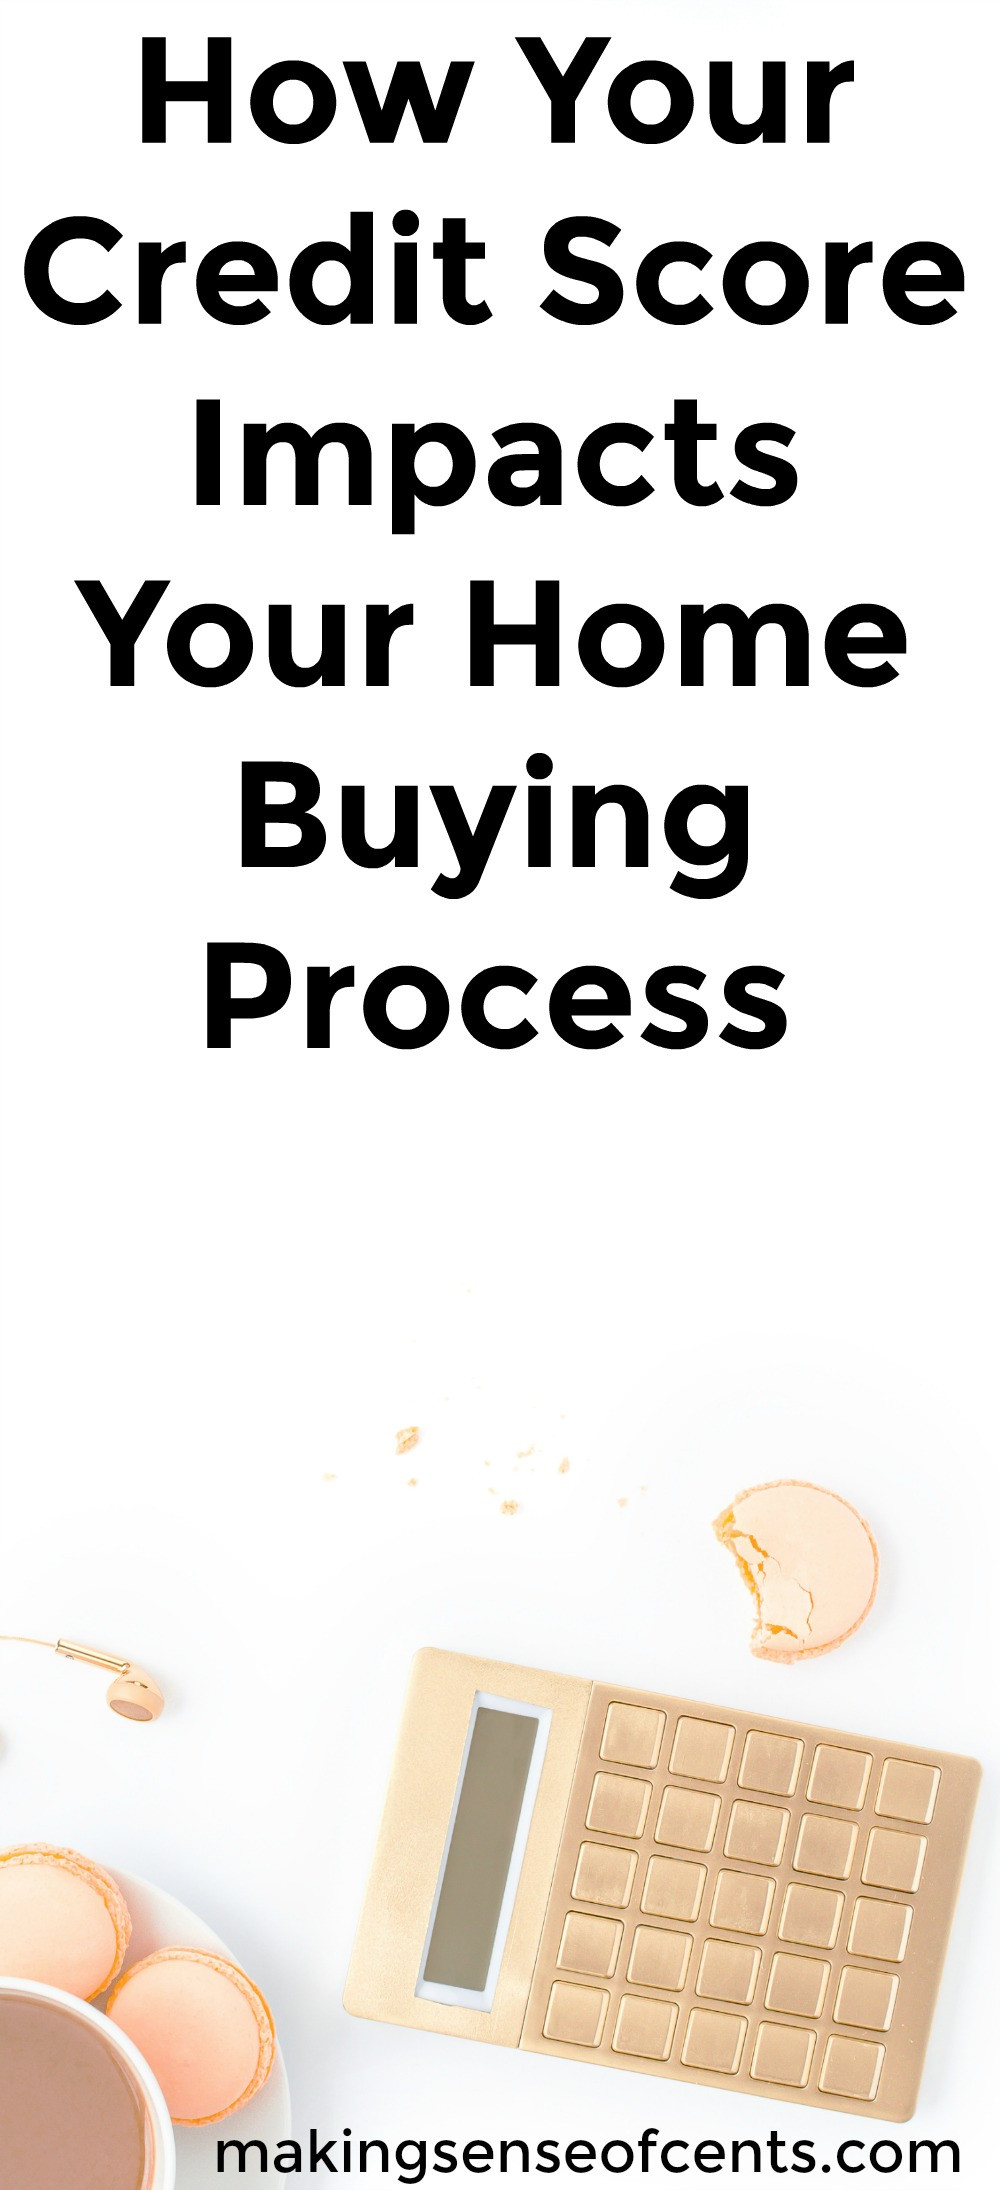 Find out how your credit score impacts your home buying process. This is a great list!